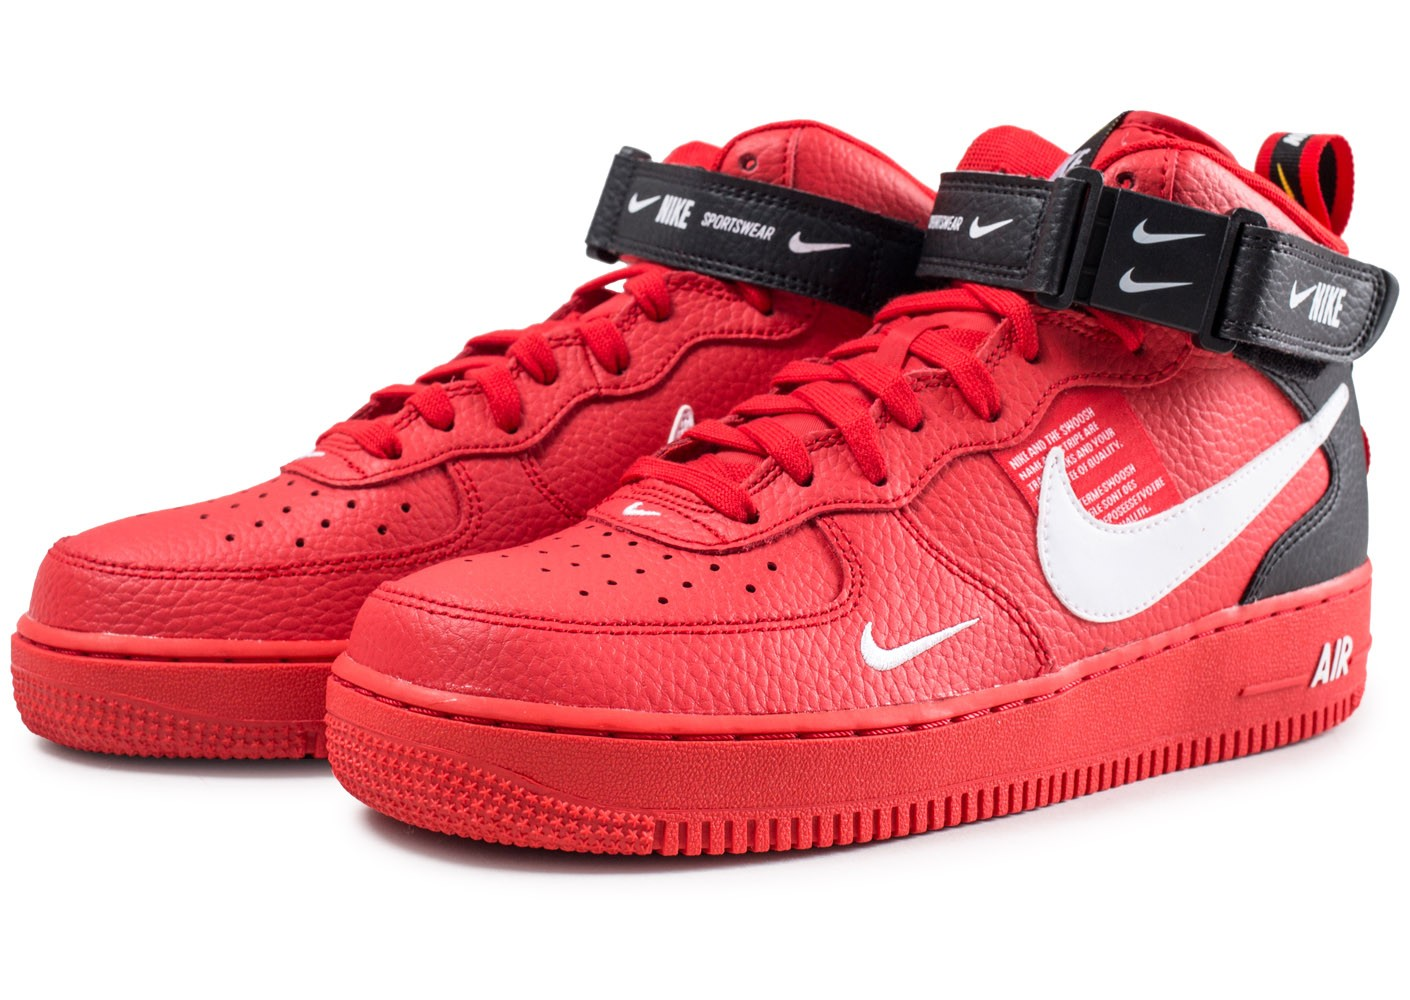 info pour 13a39 3156b Nike Nike Air Force 1 07 Mid LV8 Utility rouge - Chaussures ...